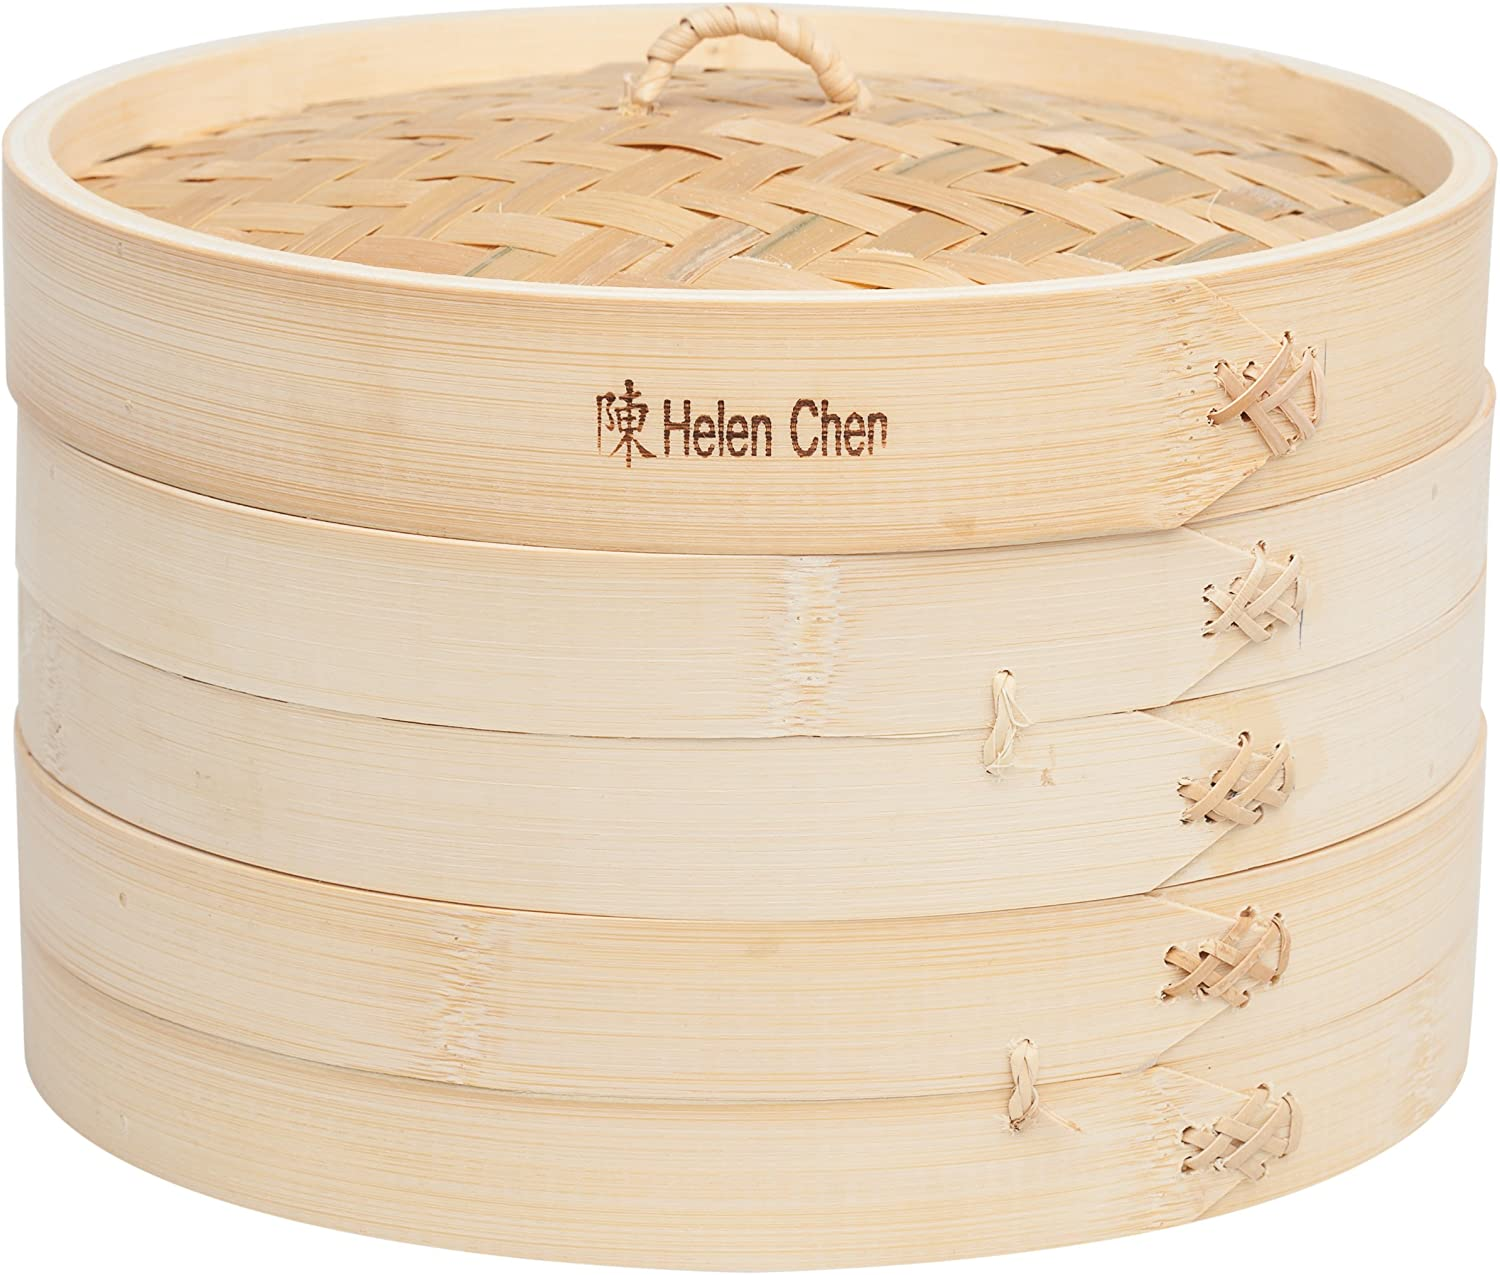 Best Bamboo Basket For Steaming 2020: (Top 10) Reviewed 2